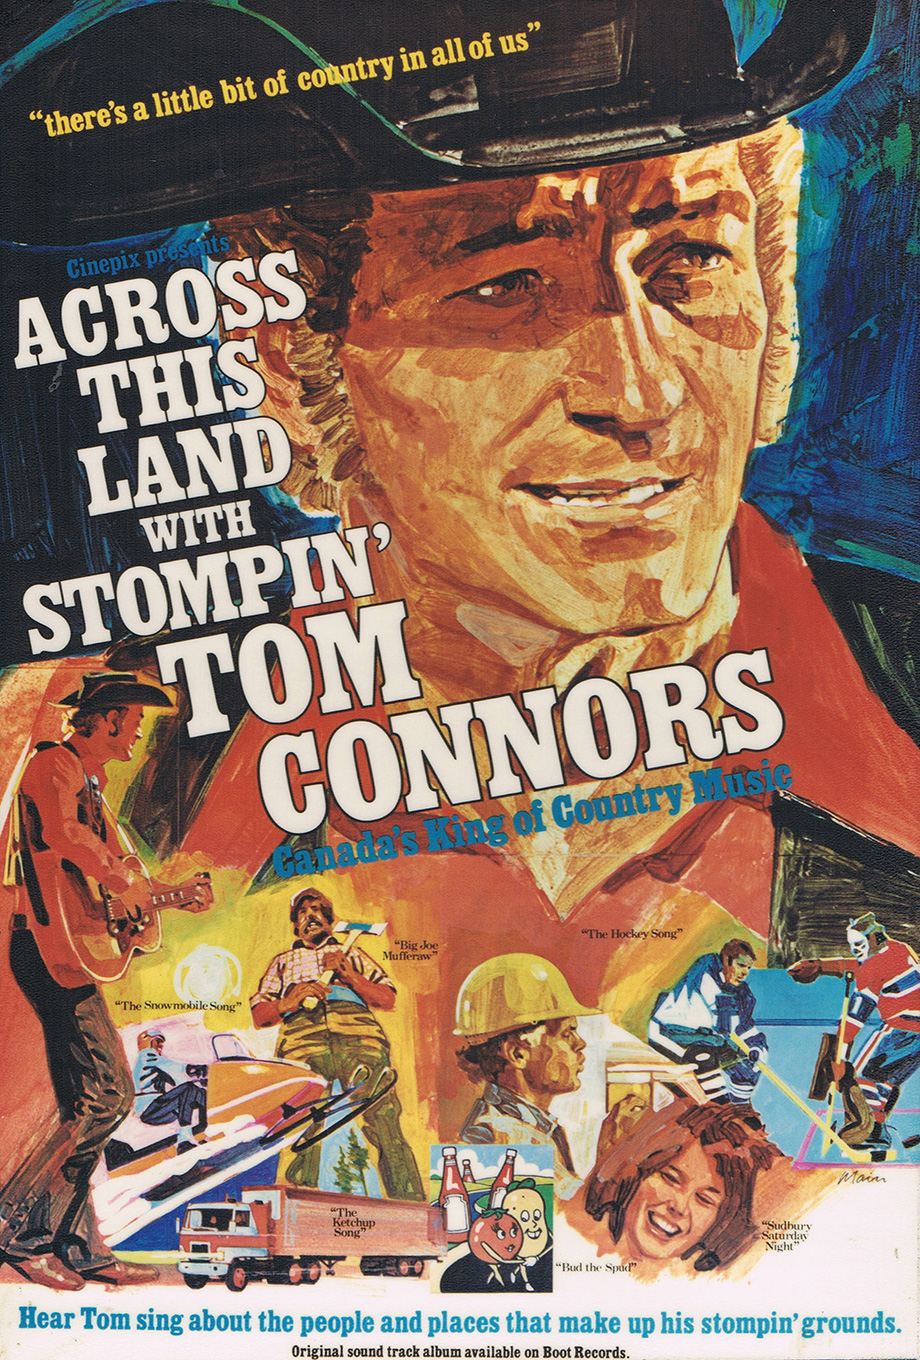 Across This Land with Stompin' Tom Connors